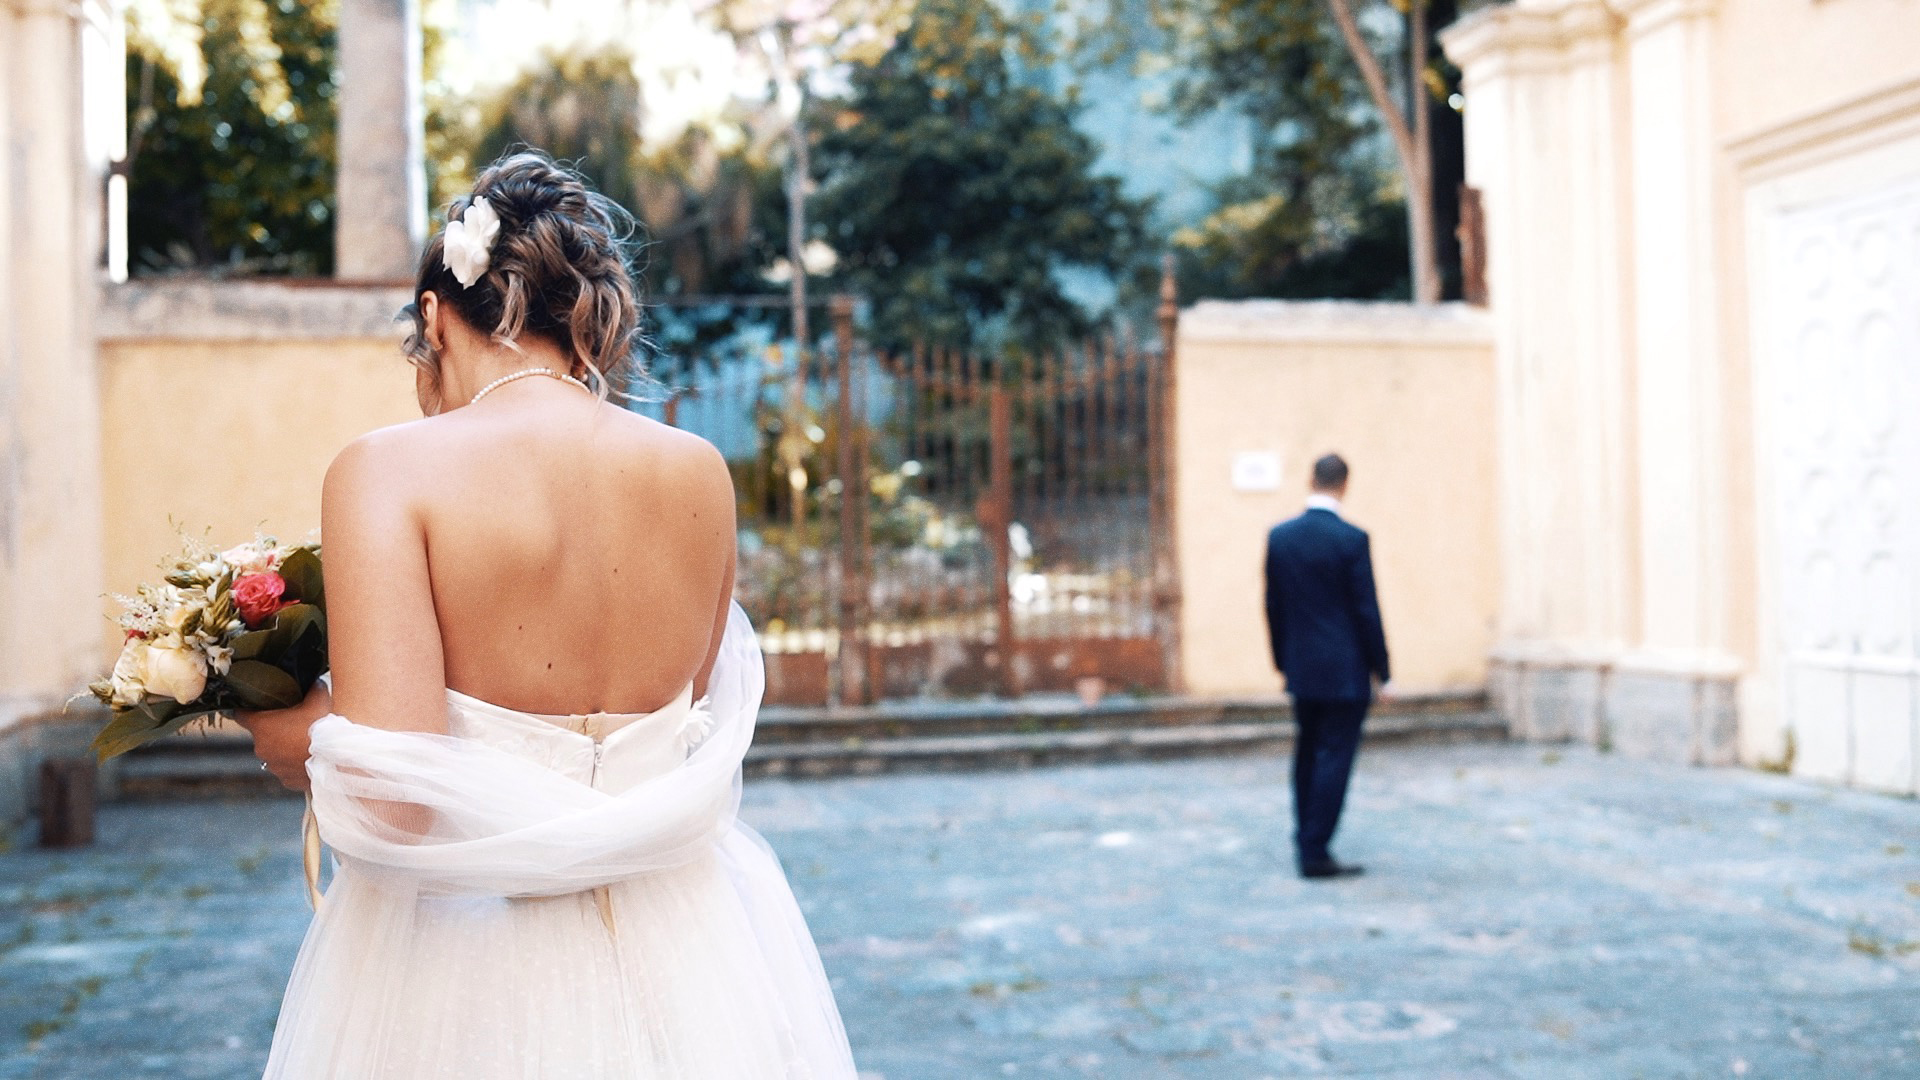 sposa raggiunge marito in cortile firstlook